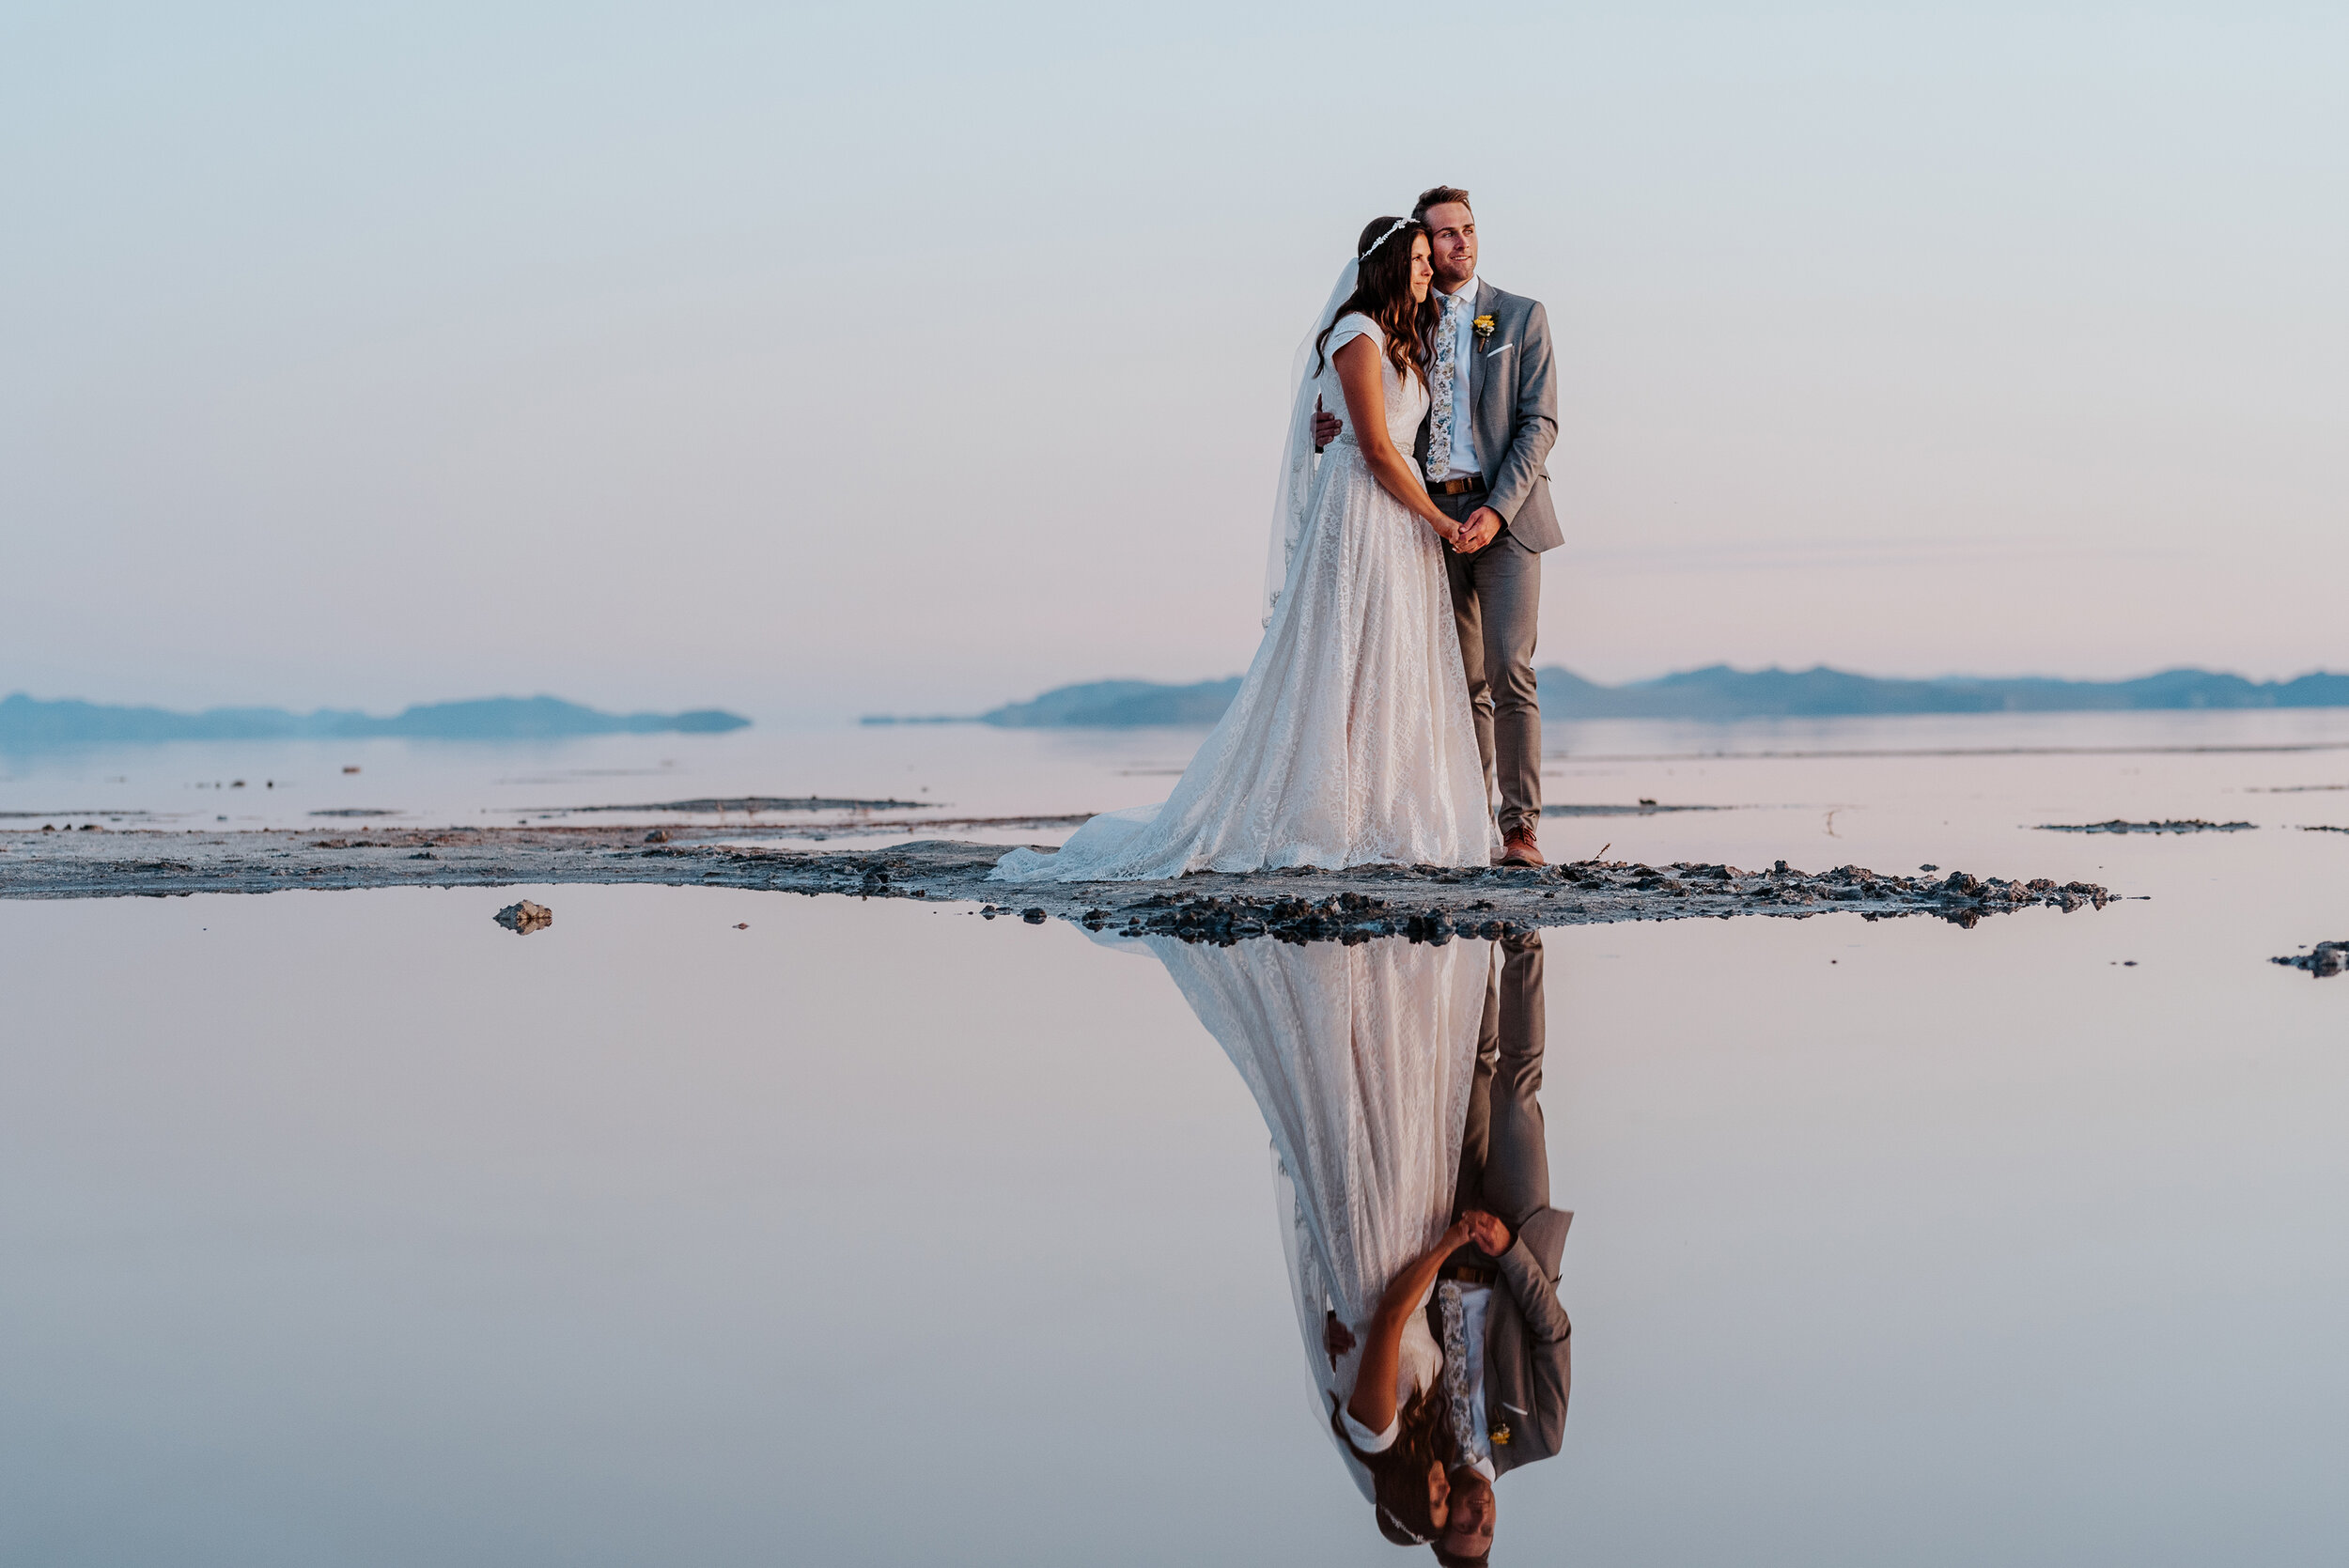 Stunning last moments of sunlight as the bride and groom stand together with their reflections in the water watching the sun disappear beyond the distant mountain ranges in Northern Utah. #spiraljetty #GreatSaltLake #formalsession #SaltFlats #sunsetphotosession #NorthernUtah #weddingphotographer #formalphotographer #brideandgroom #outdoorformals #weddingformalphotography